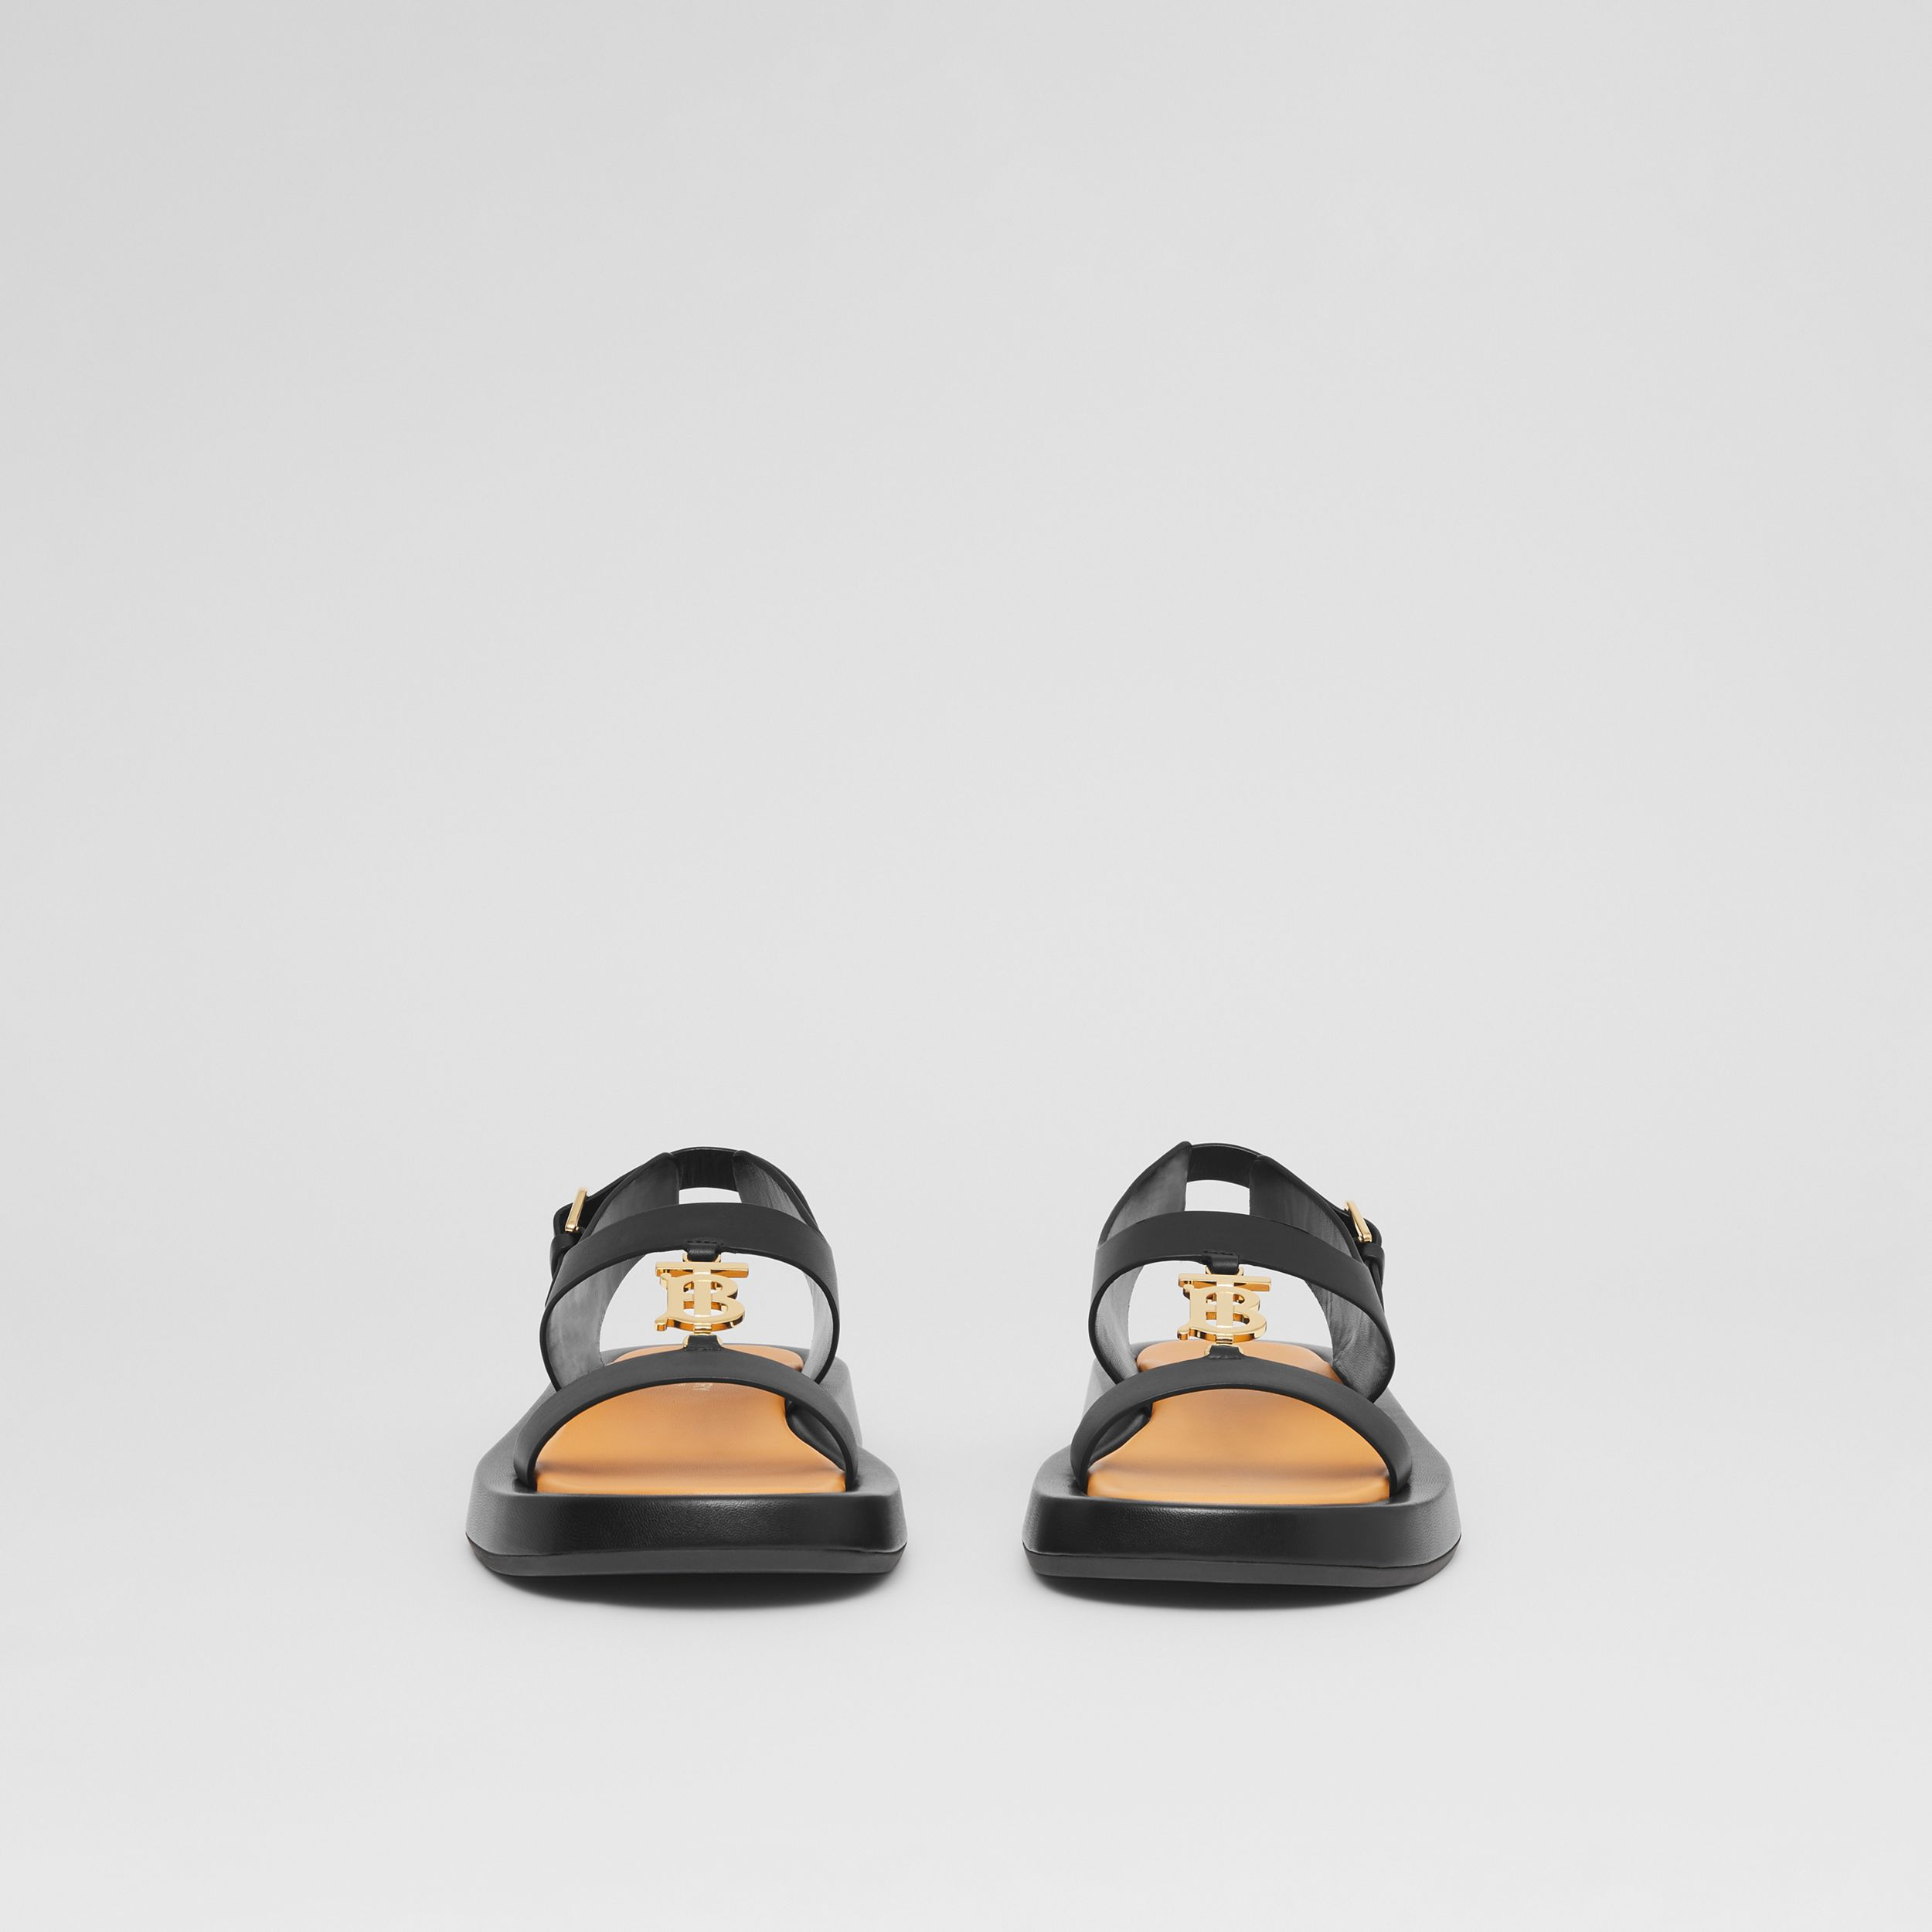 Monogram Motif Leather Sandals in Black - Women | Burberry United States - 3